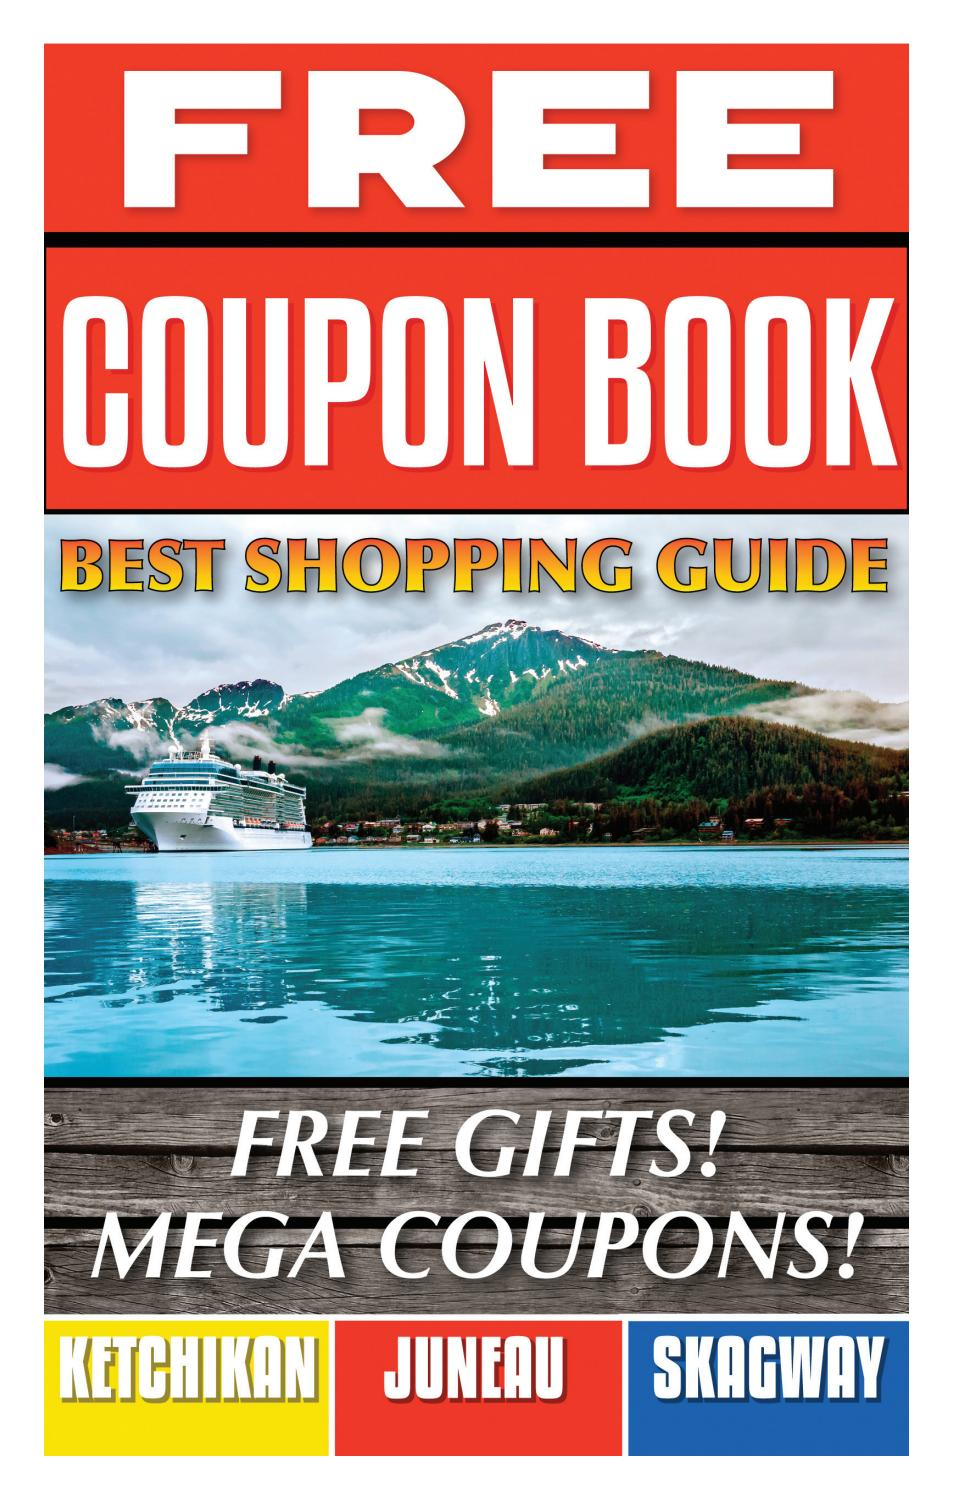 100 kitchen collection outlet coupon saks fifth avenue kitchen collection outlet coupon 2017 alaska coupon book by alaskacruisecouponbook issuu